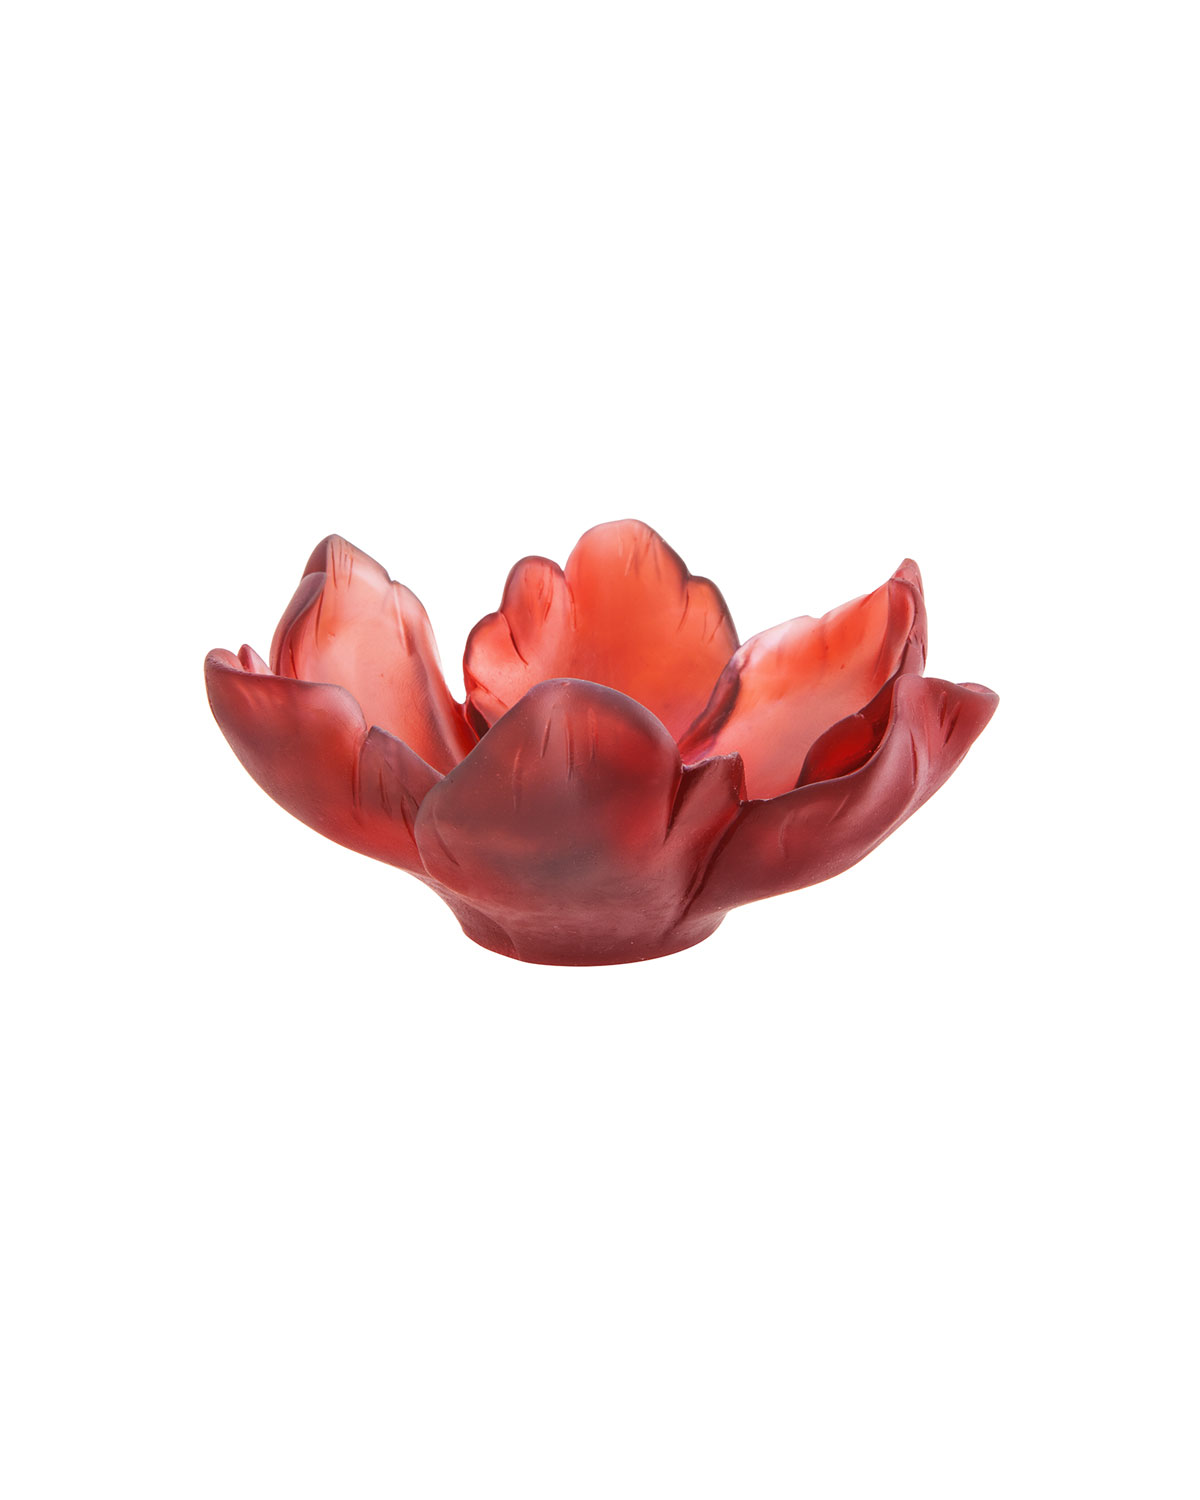 Daum SMALL TULIP BOWL